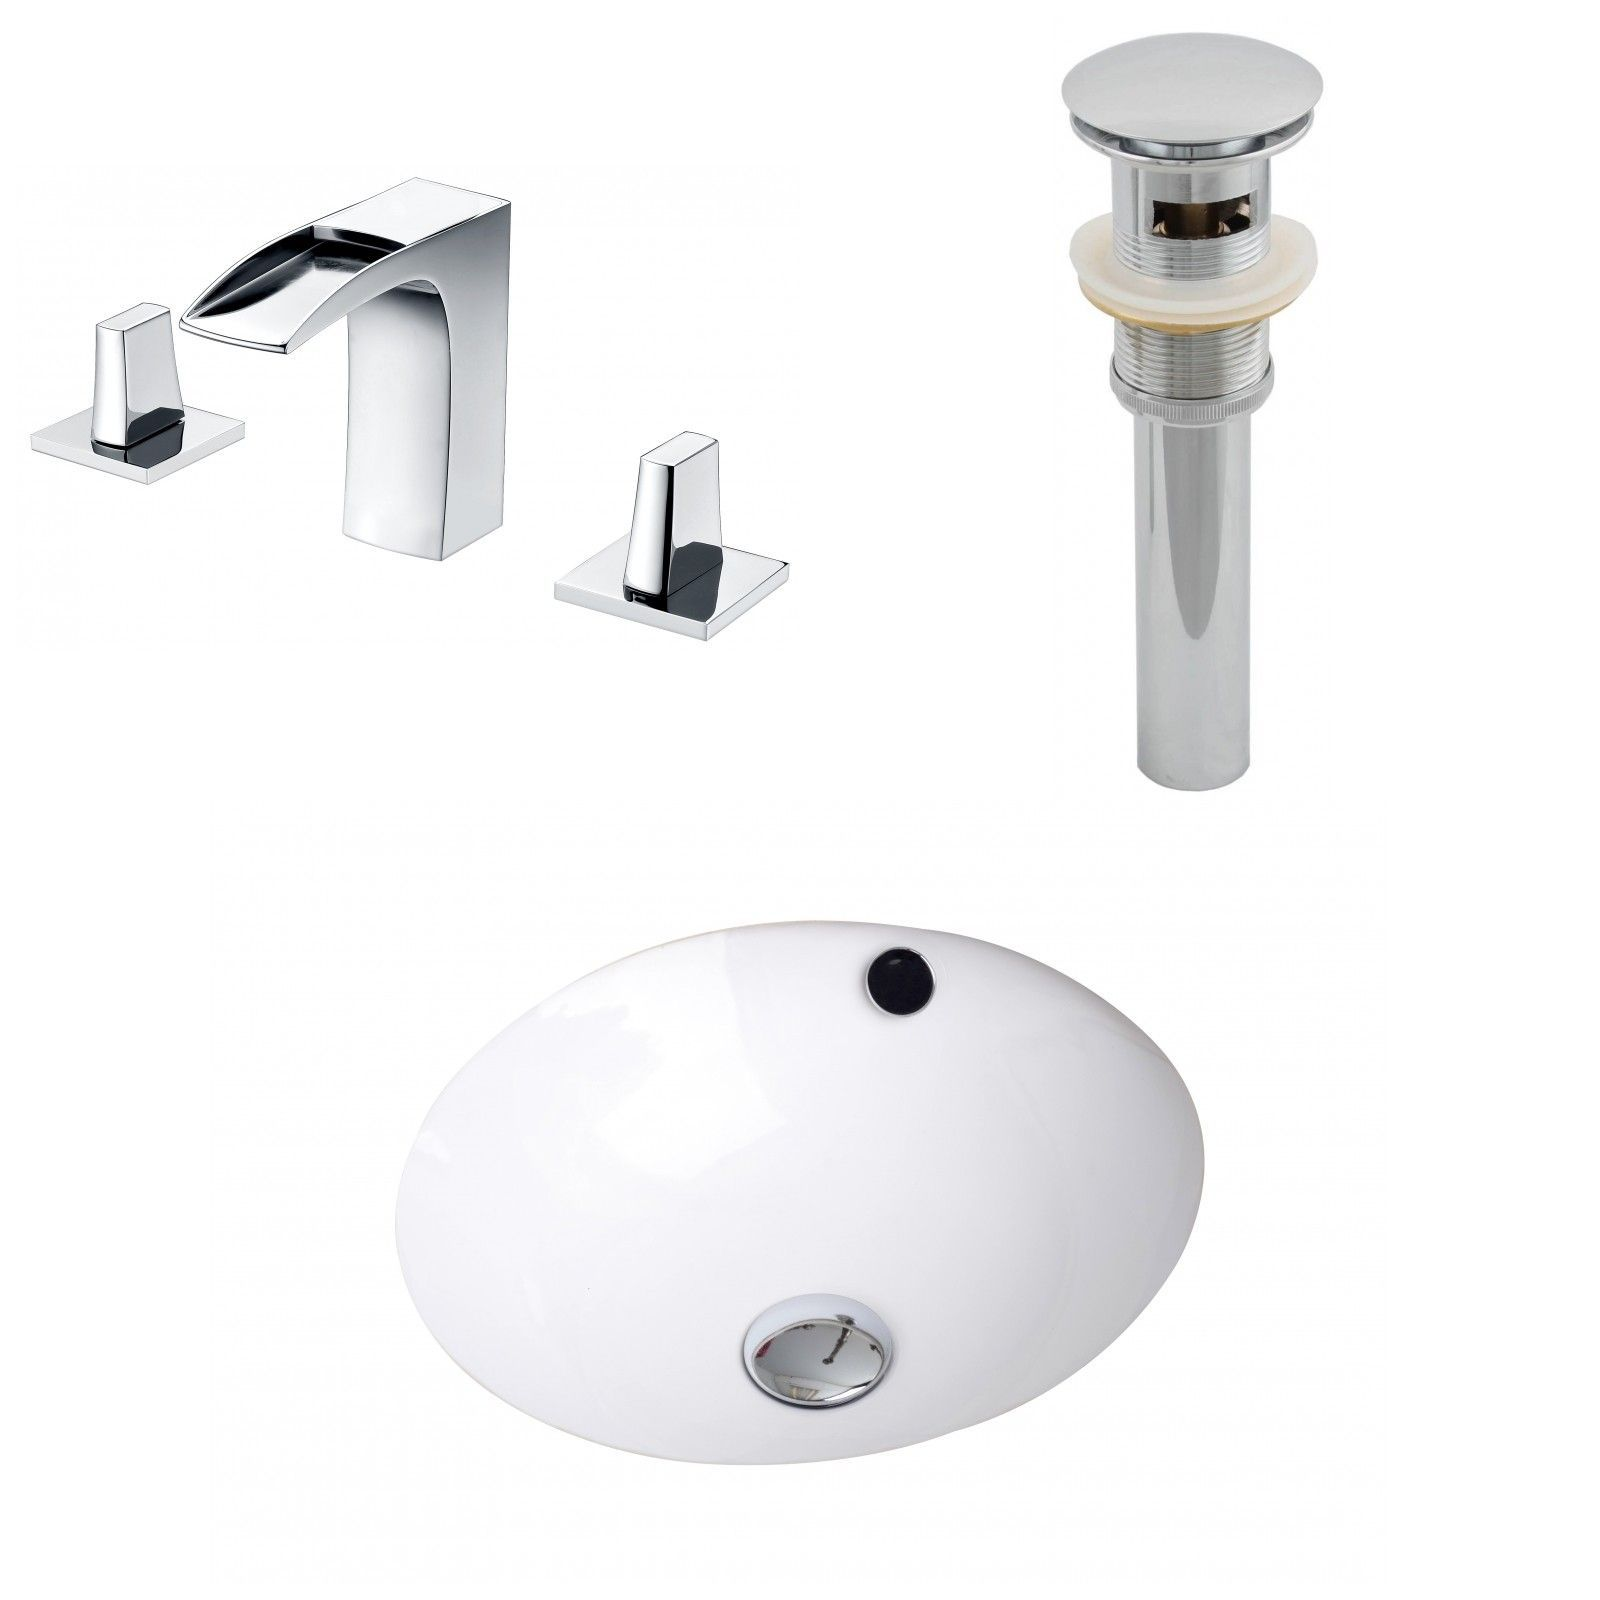 American Standard Ovalyn Oval Undermount Bathroom Sink With Overflow  Bathroom Undermount Bathroom Sink And American Standard